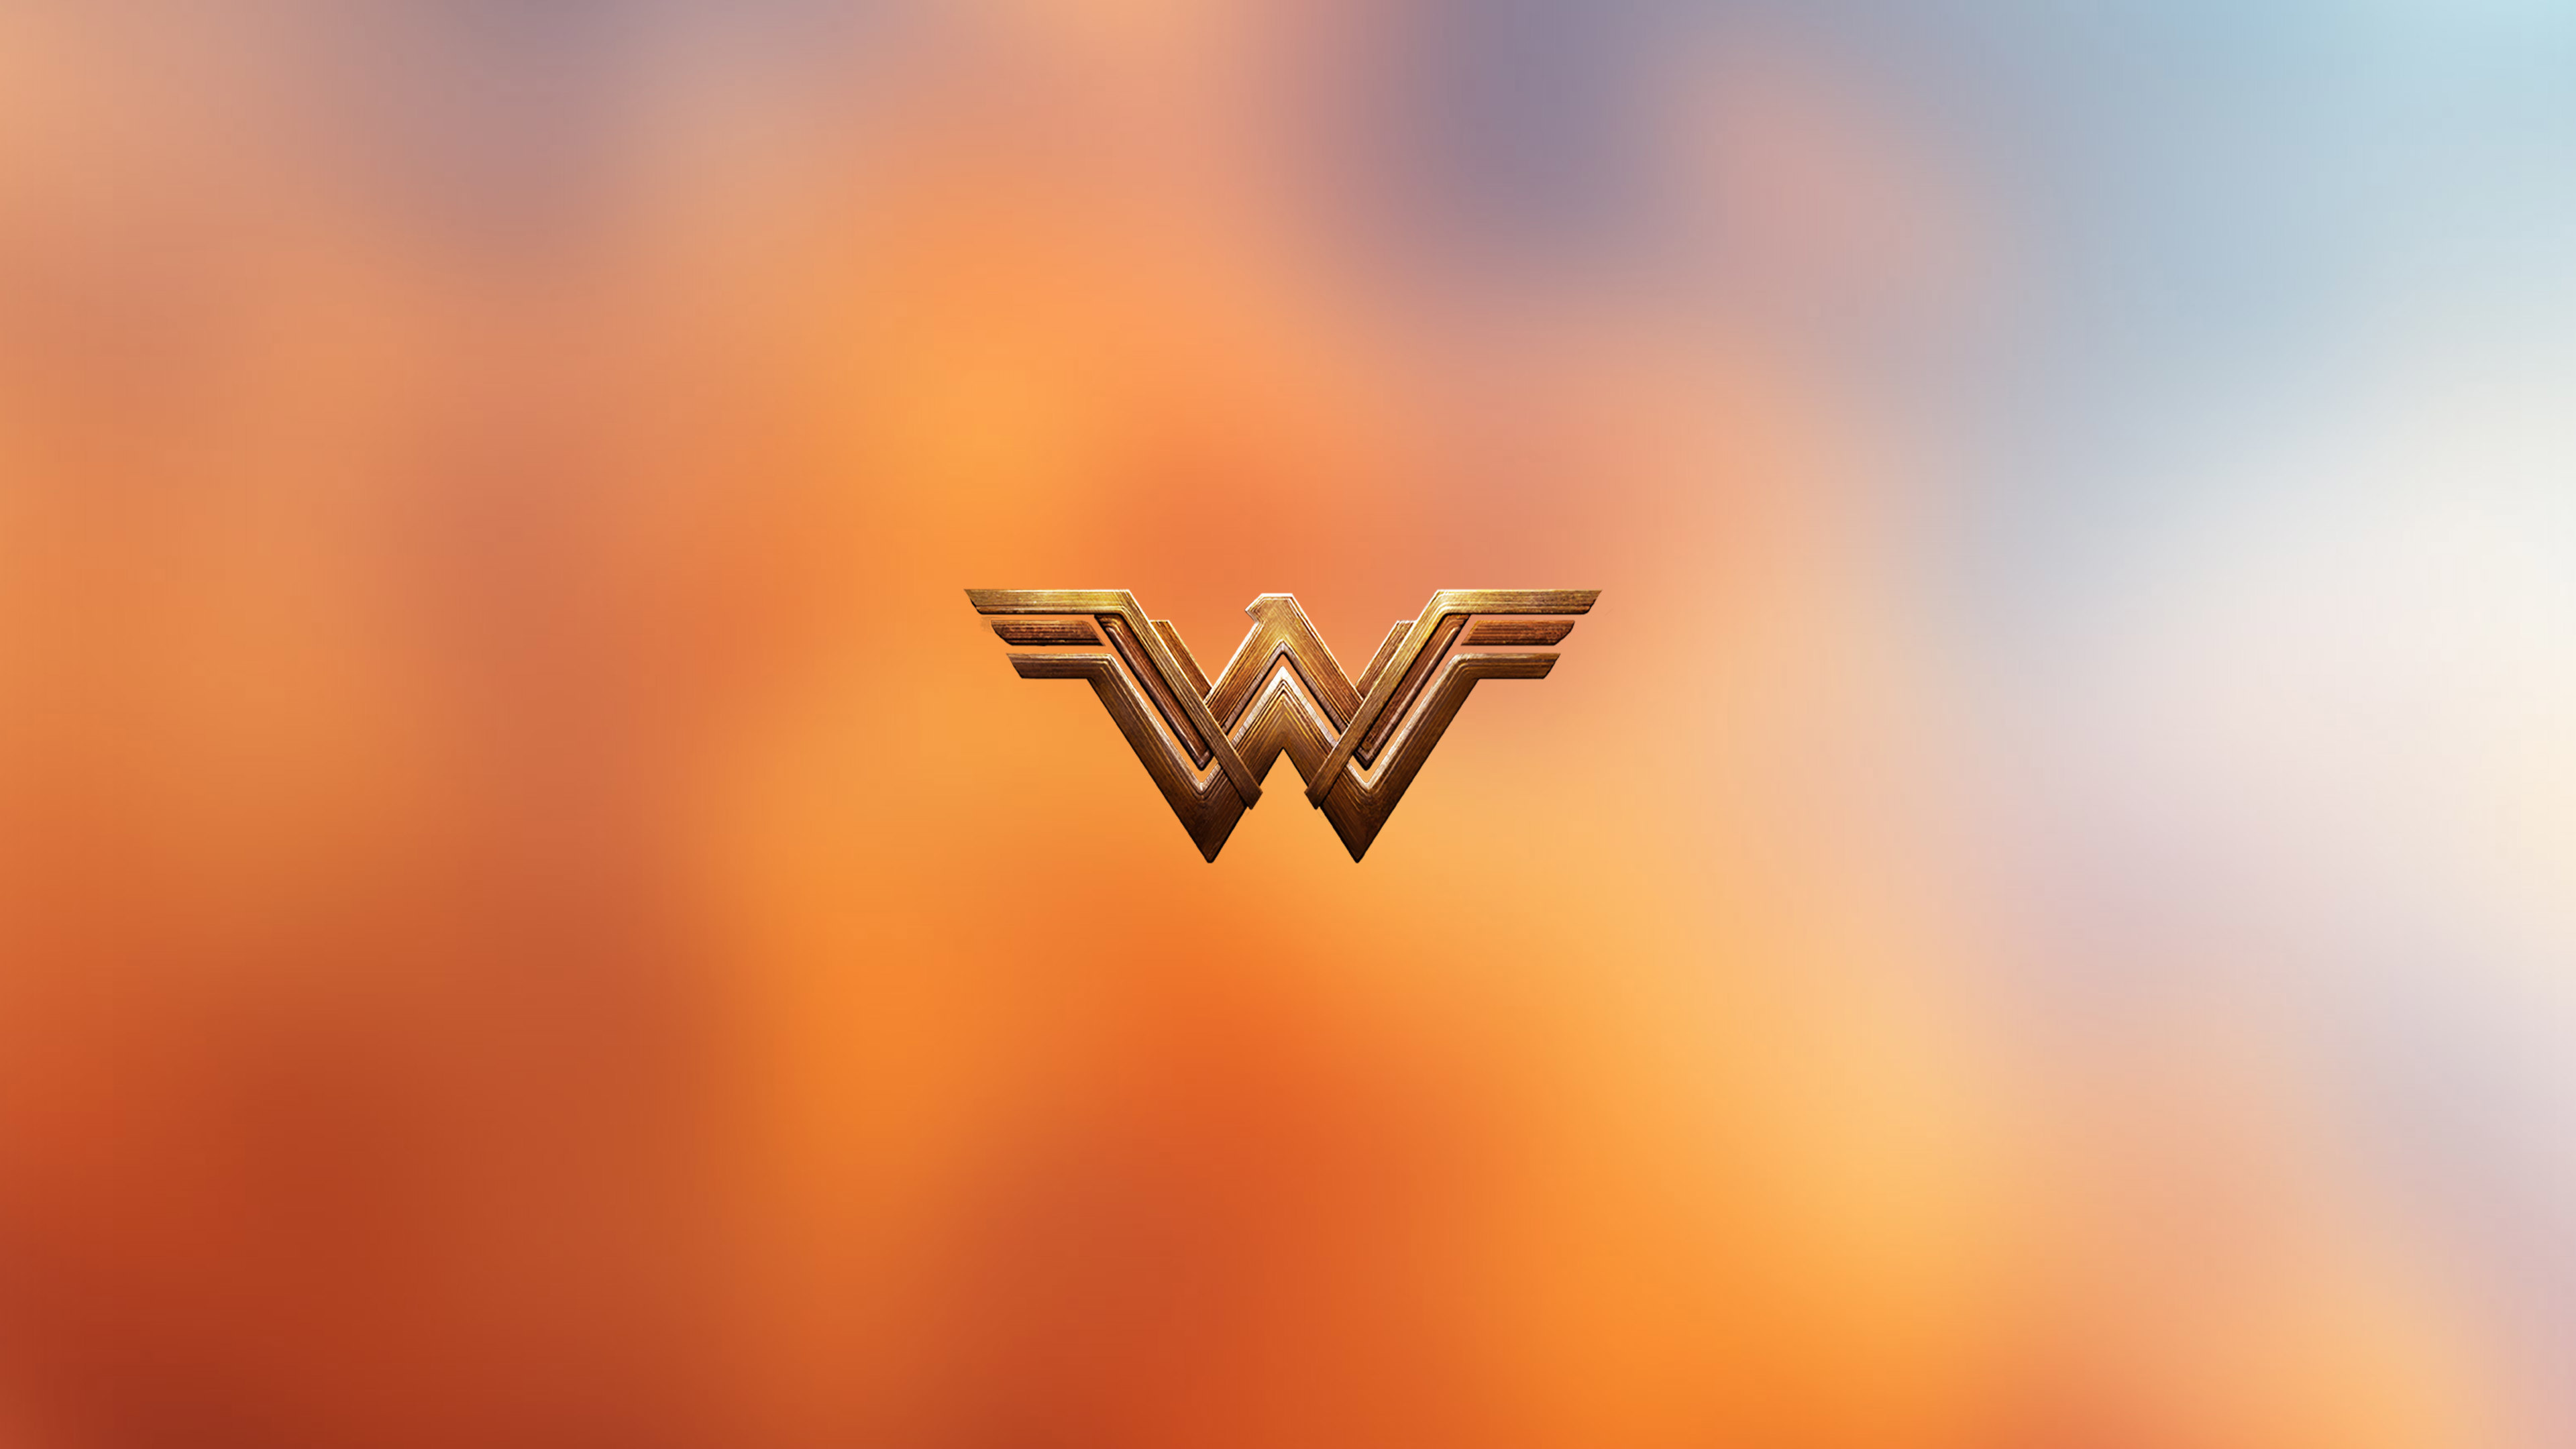 Wonder woman logo wallpaper 3840x2160 wonder woman logo 4k 2048x1152 resolution pronofoot35fo Image collections